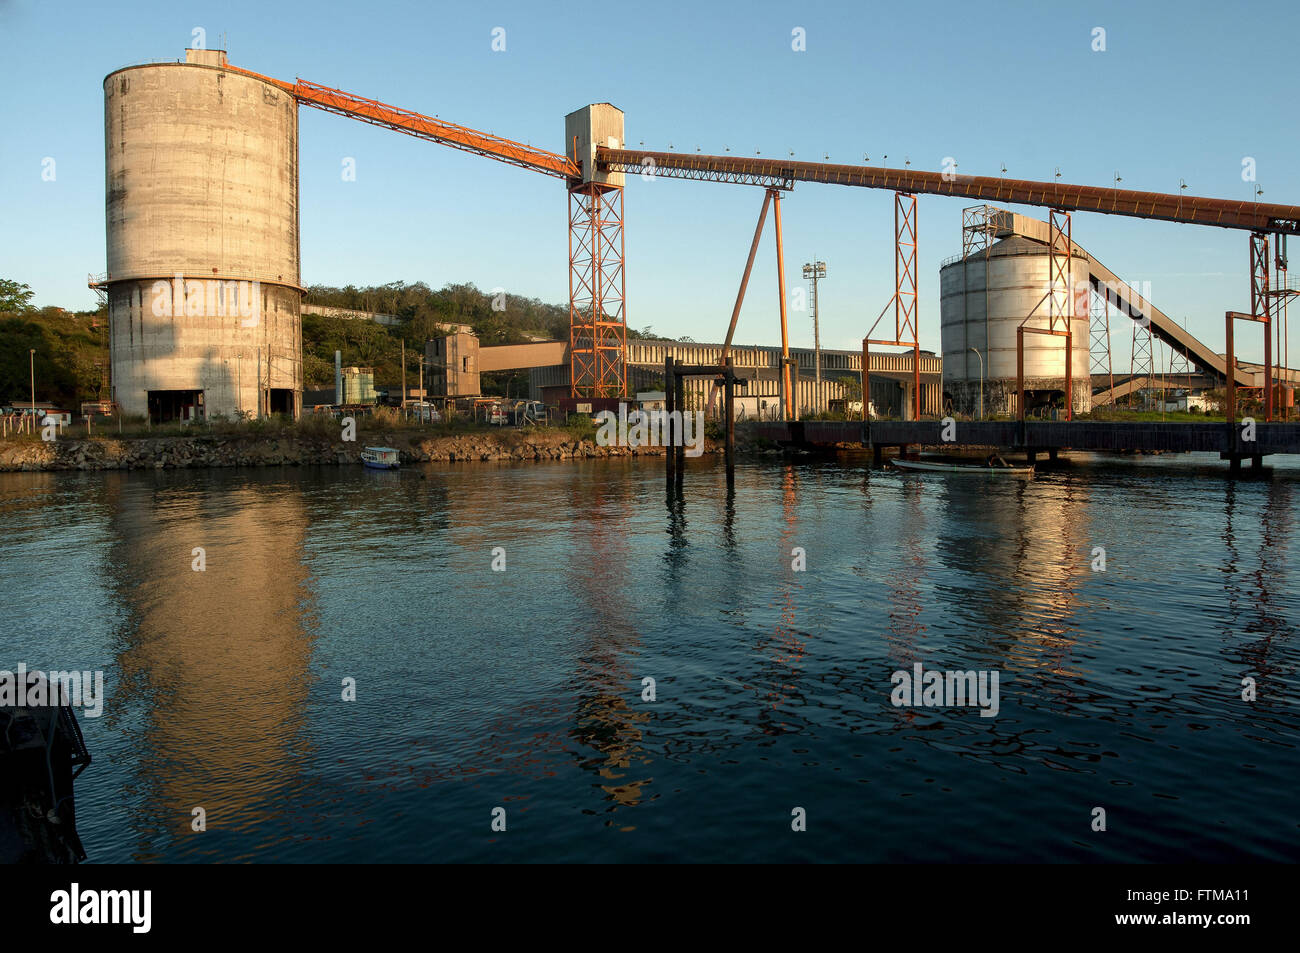 Grain storage silos and conveyor belt at the Port of Aratu - Stock Image